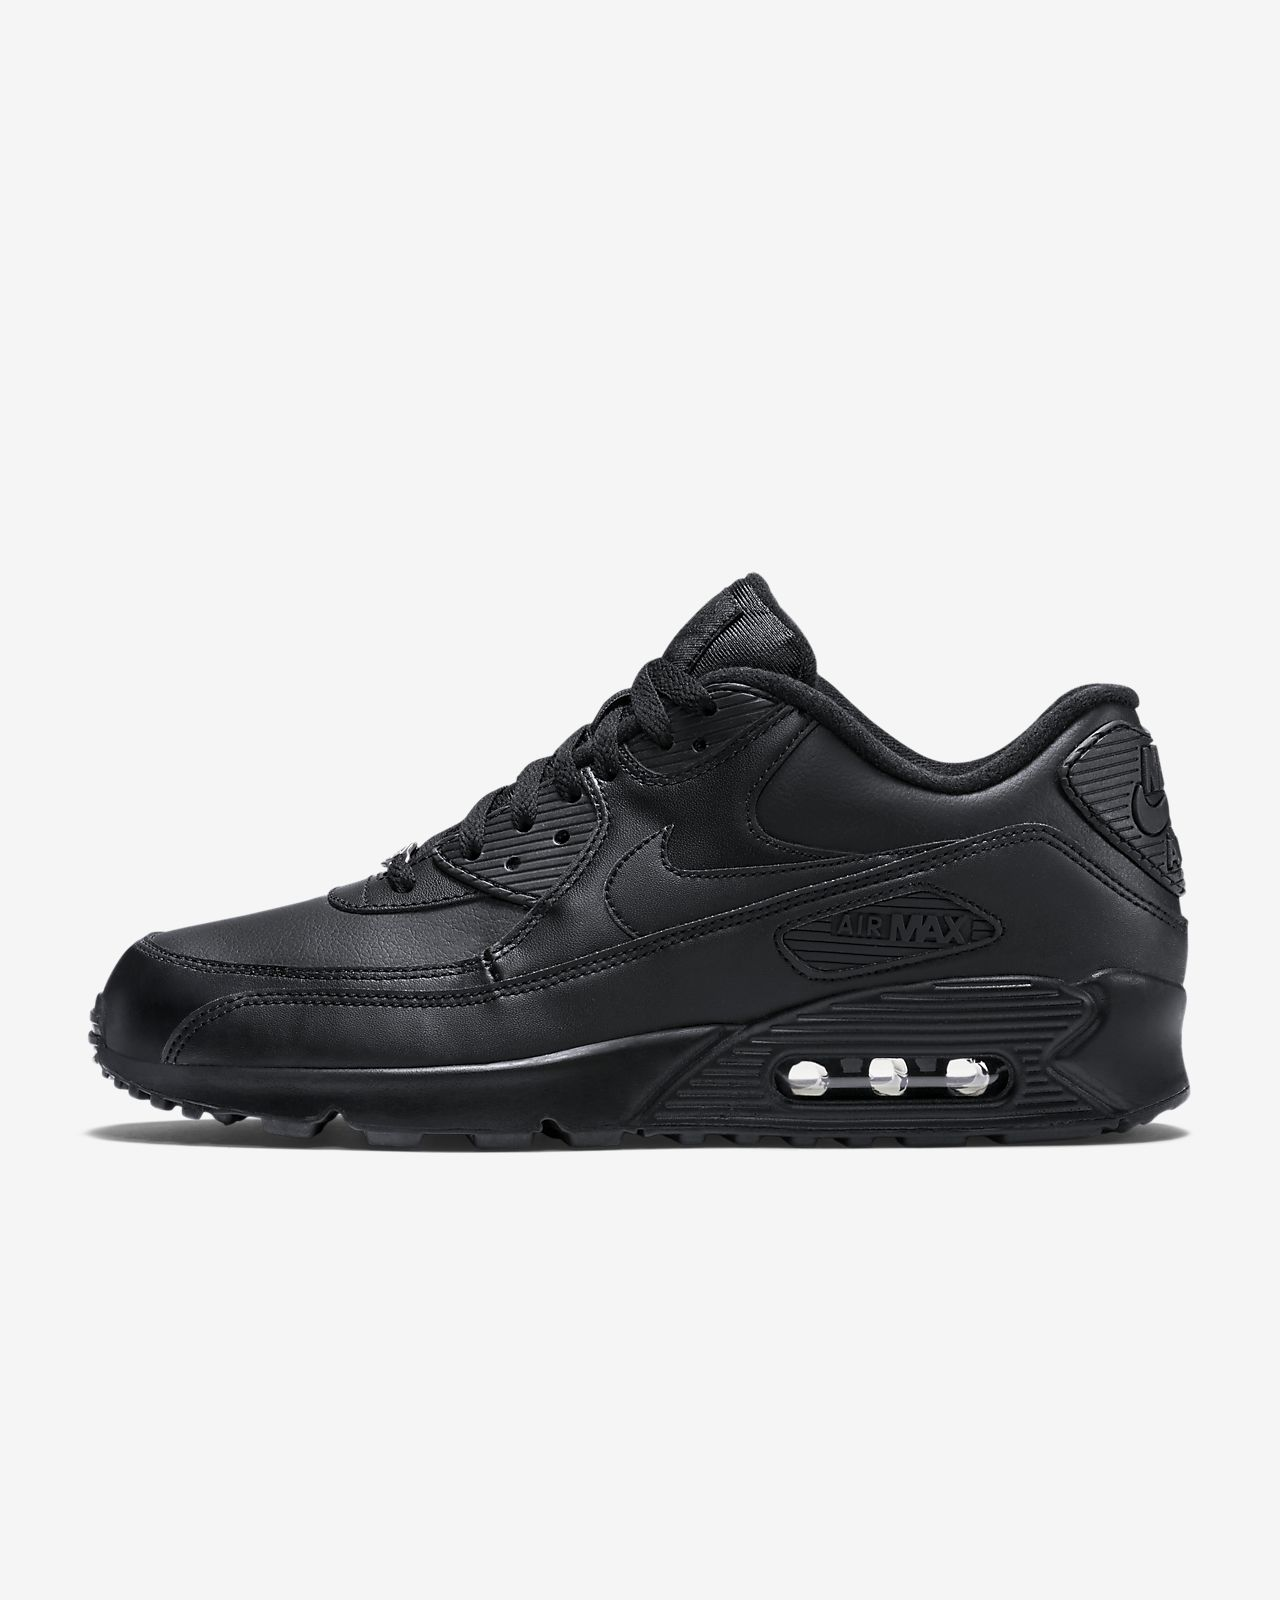 outlet store ffb60 9df63 ... Nike Air Max 90 Leather Herrenschuh